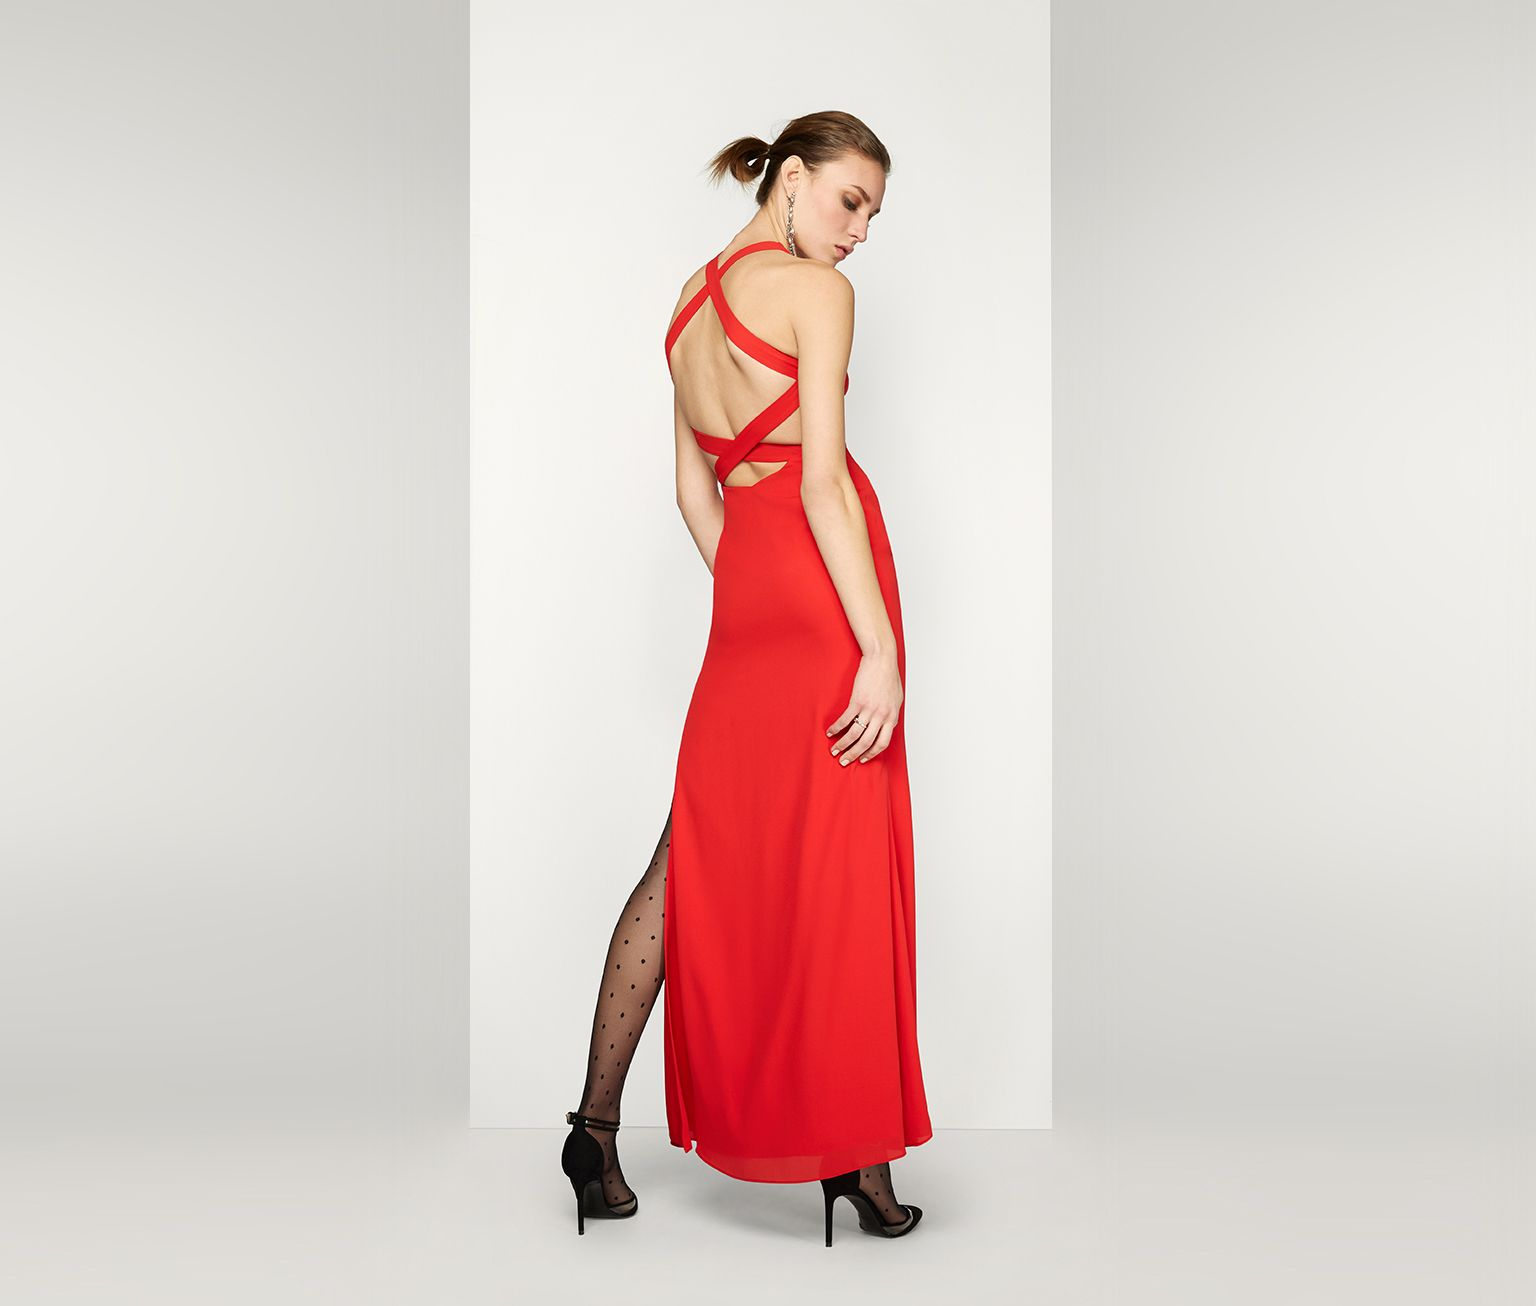 The axis pinterest stretch satin dresses dresses and satin